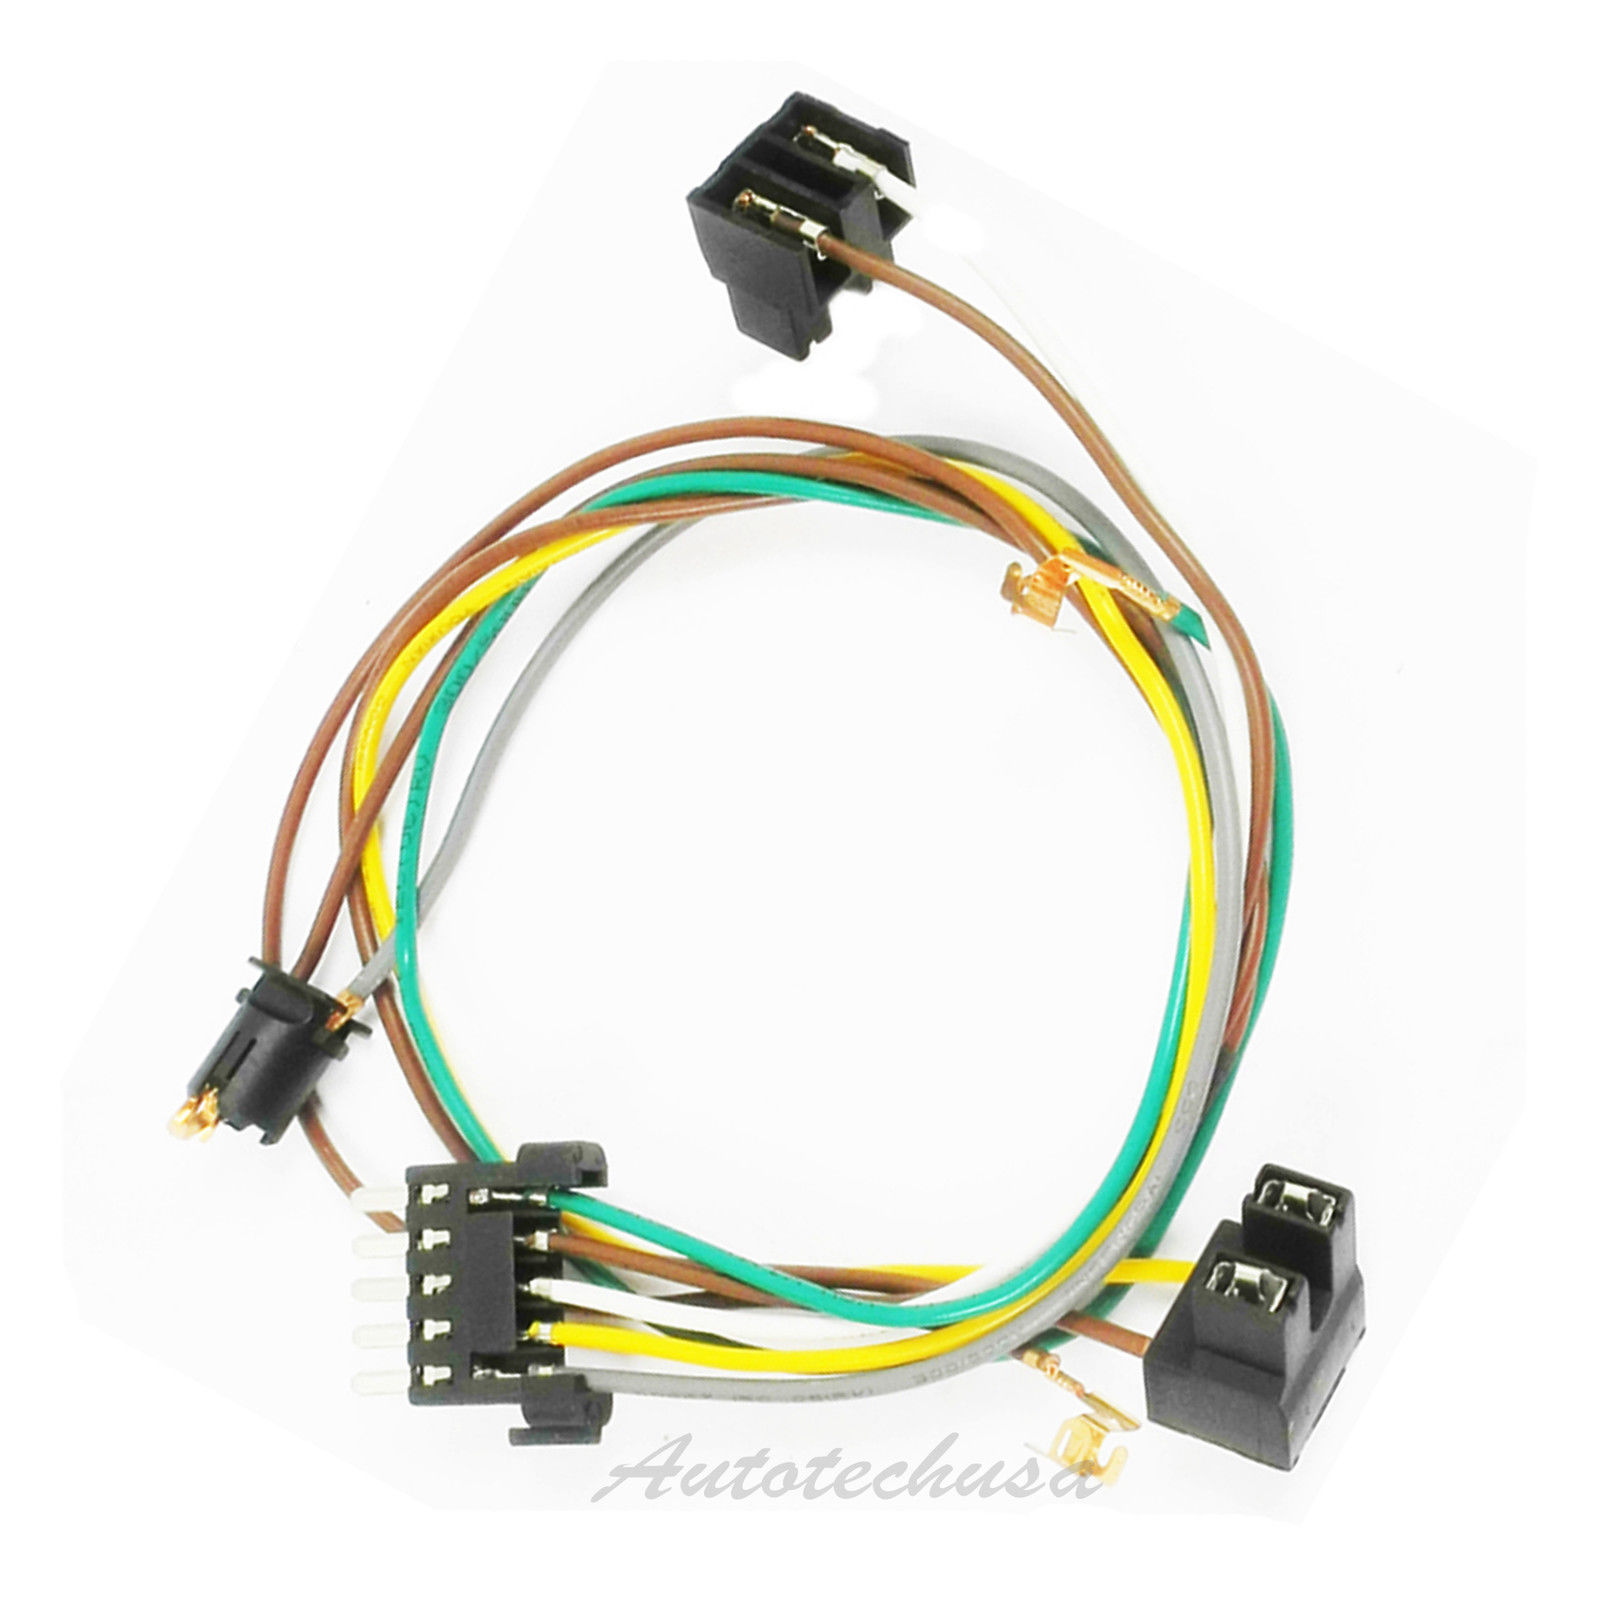 hight resolution of left or right headlight wire harness connector kit for dc109 headlight pigtail wiring